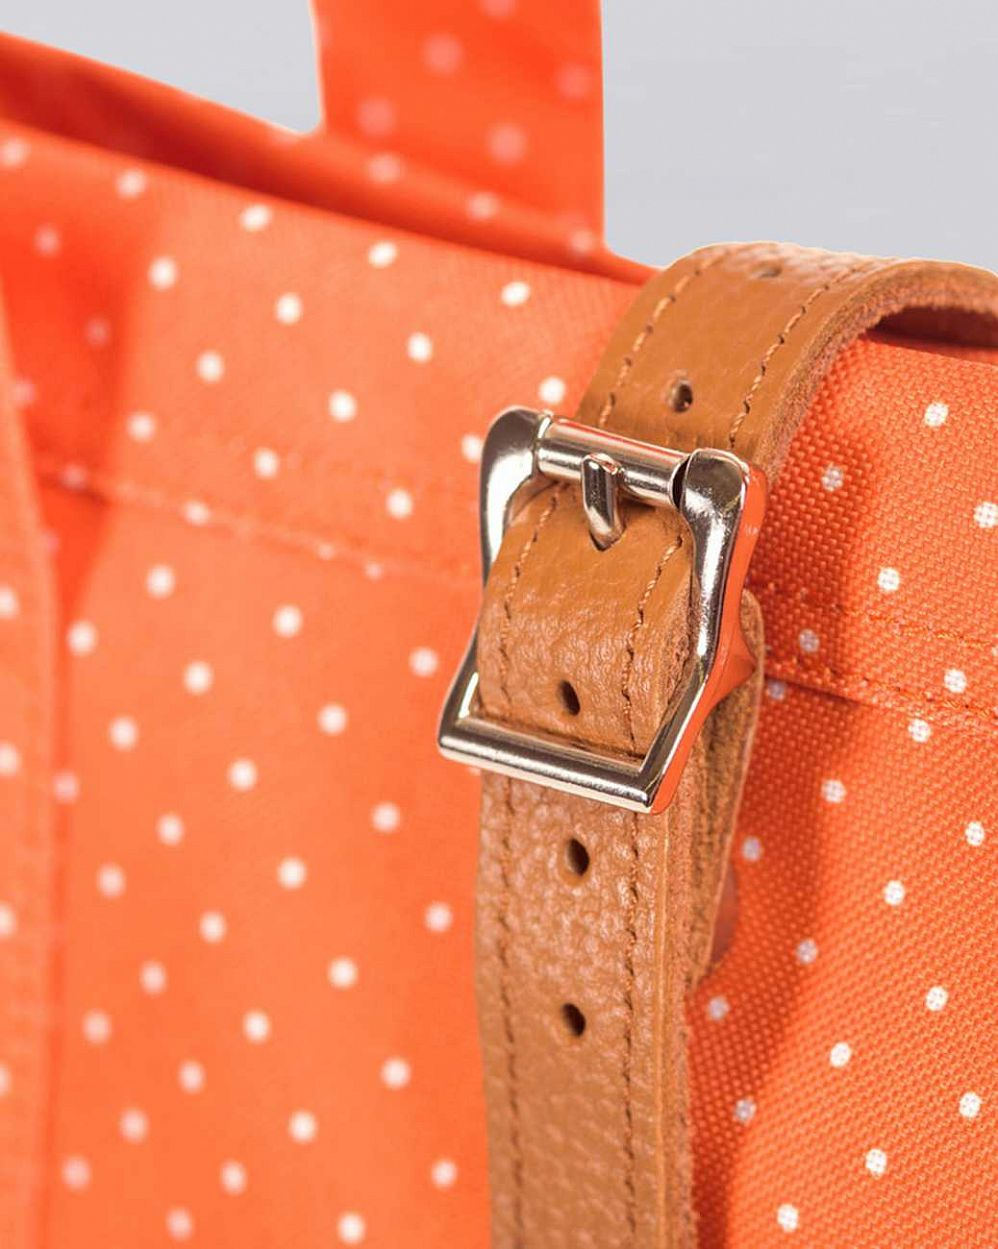 Сумка herschel market orange polka dot цена в Москве